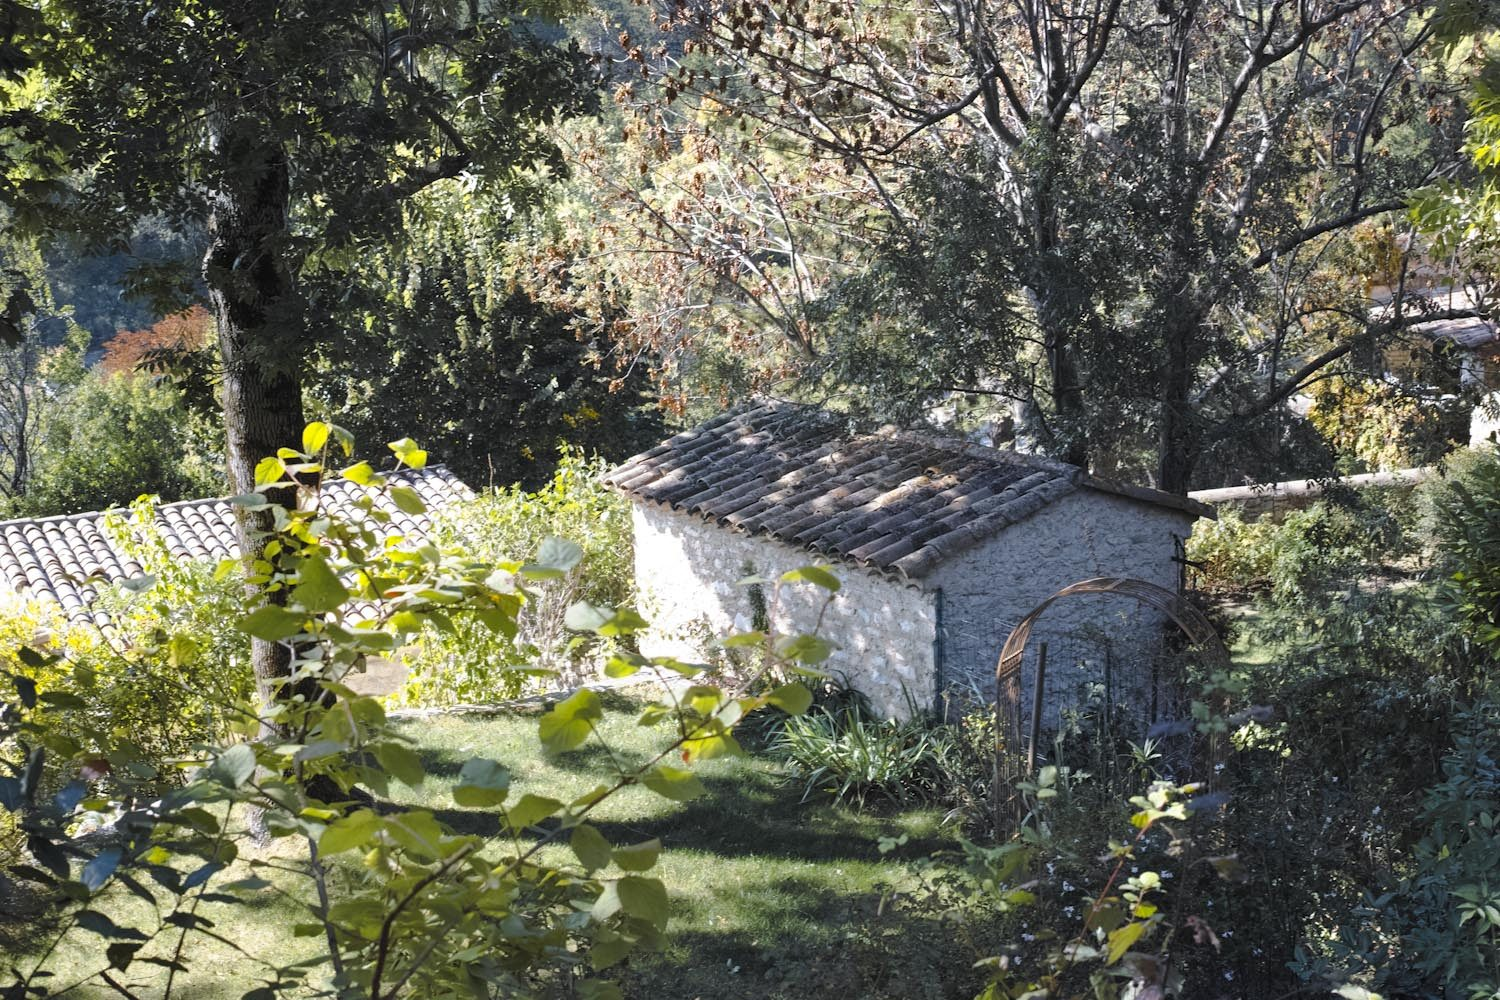 themood_drome_october_france_thevoyageur020